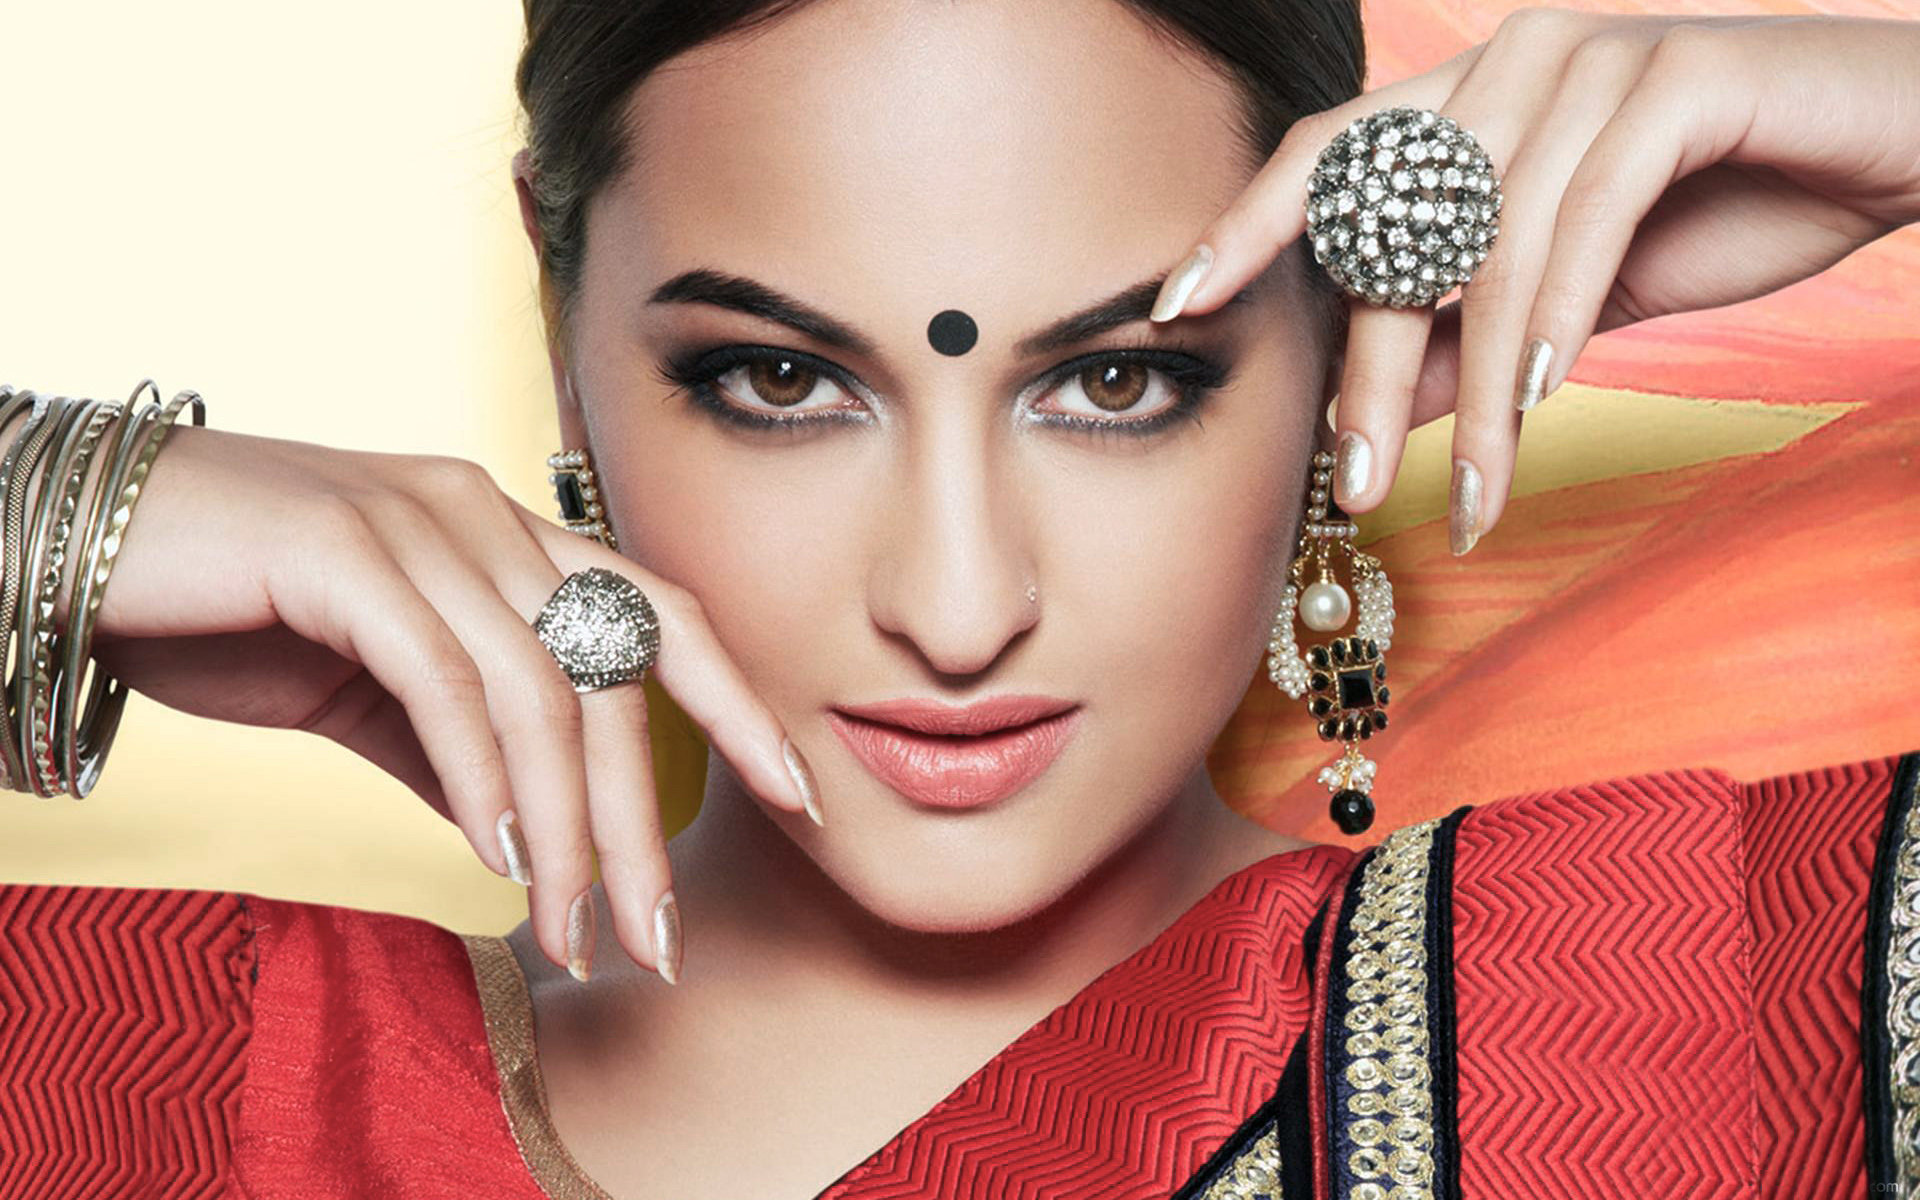 free download sonakshi sinha wallpaper id:375399 hd 1920x1200 for